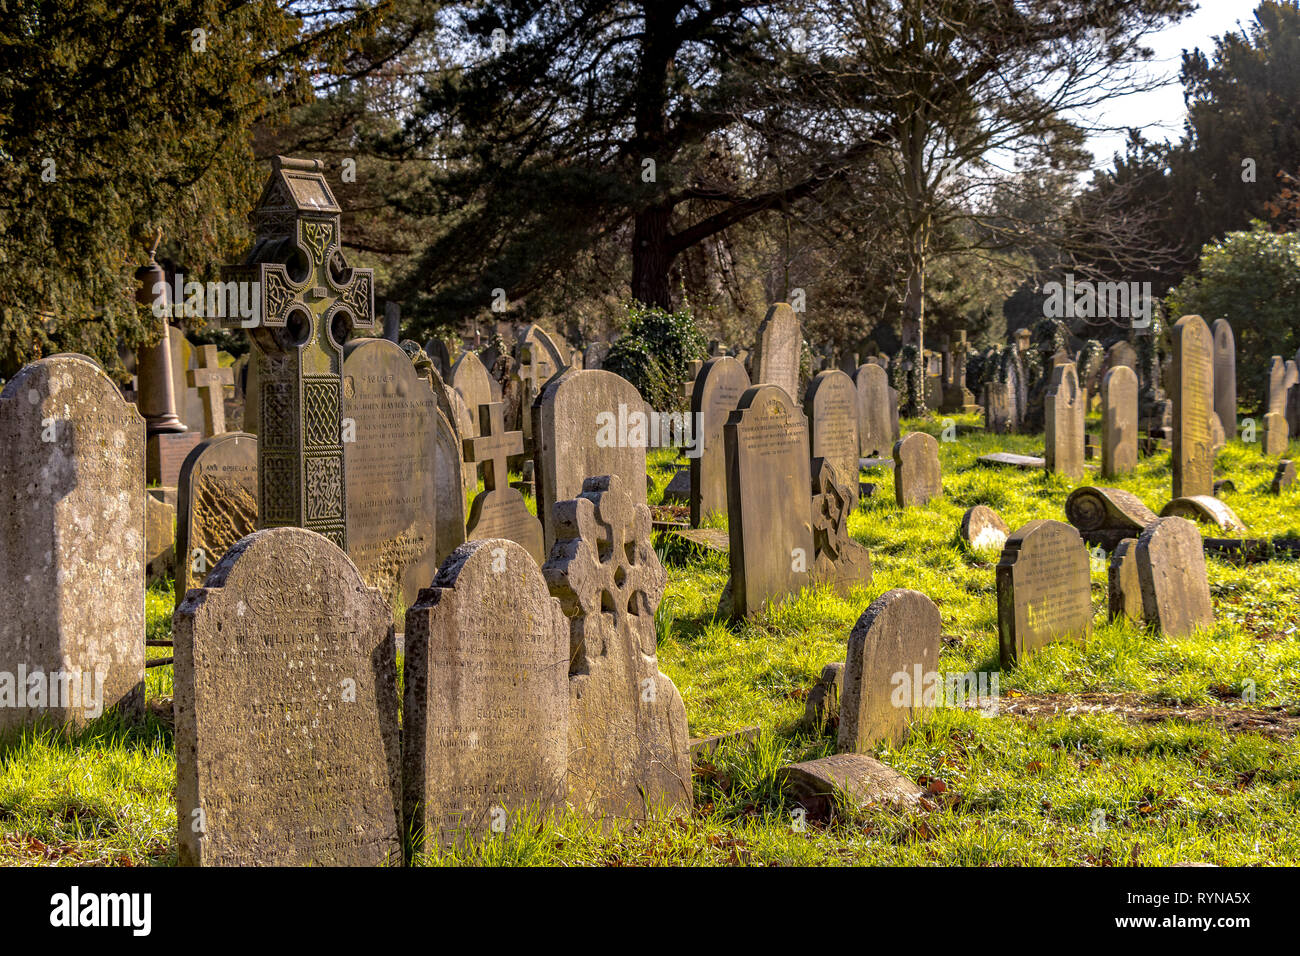 Graves and headstones in Brompton Cemetery in the Royal Borough of Kensington and Chelsea, SW London, managed by The Royal Parks. Stock Photo